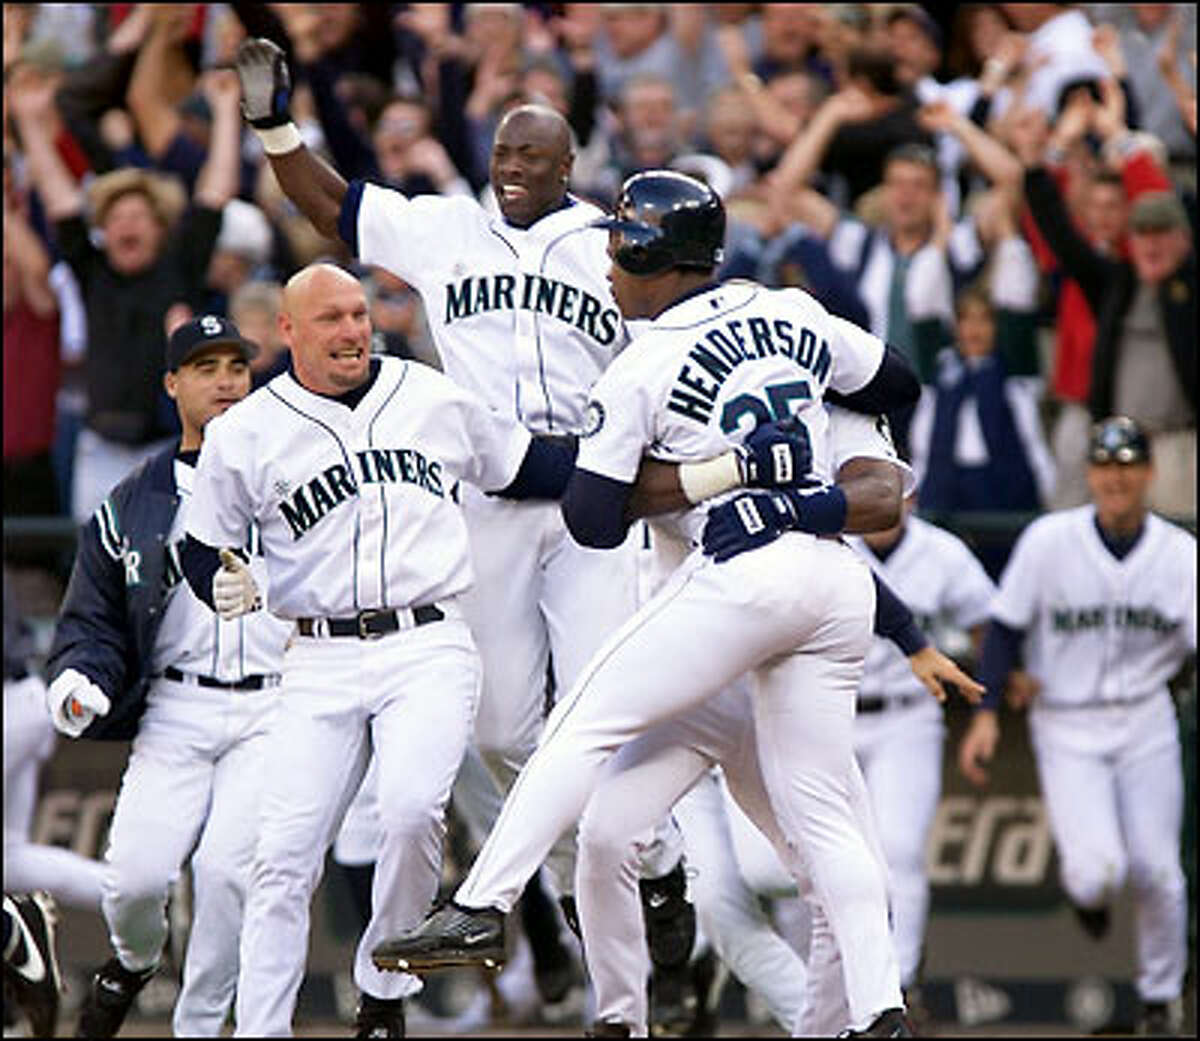 Jay Buhner, left, and Mike Cameron lead the charge out of the dugout to greet Rickey Henderson after he scored Seattle's winning run on a ninth-inning bunt by Carlos Guillen.